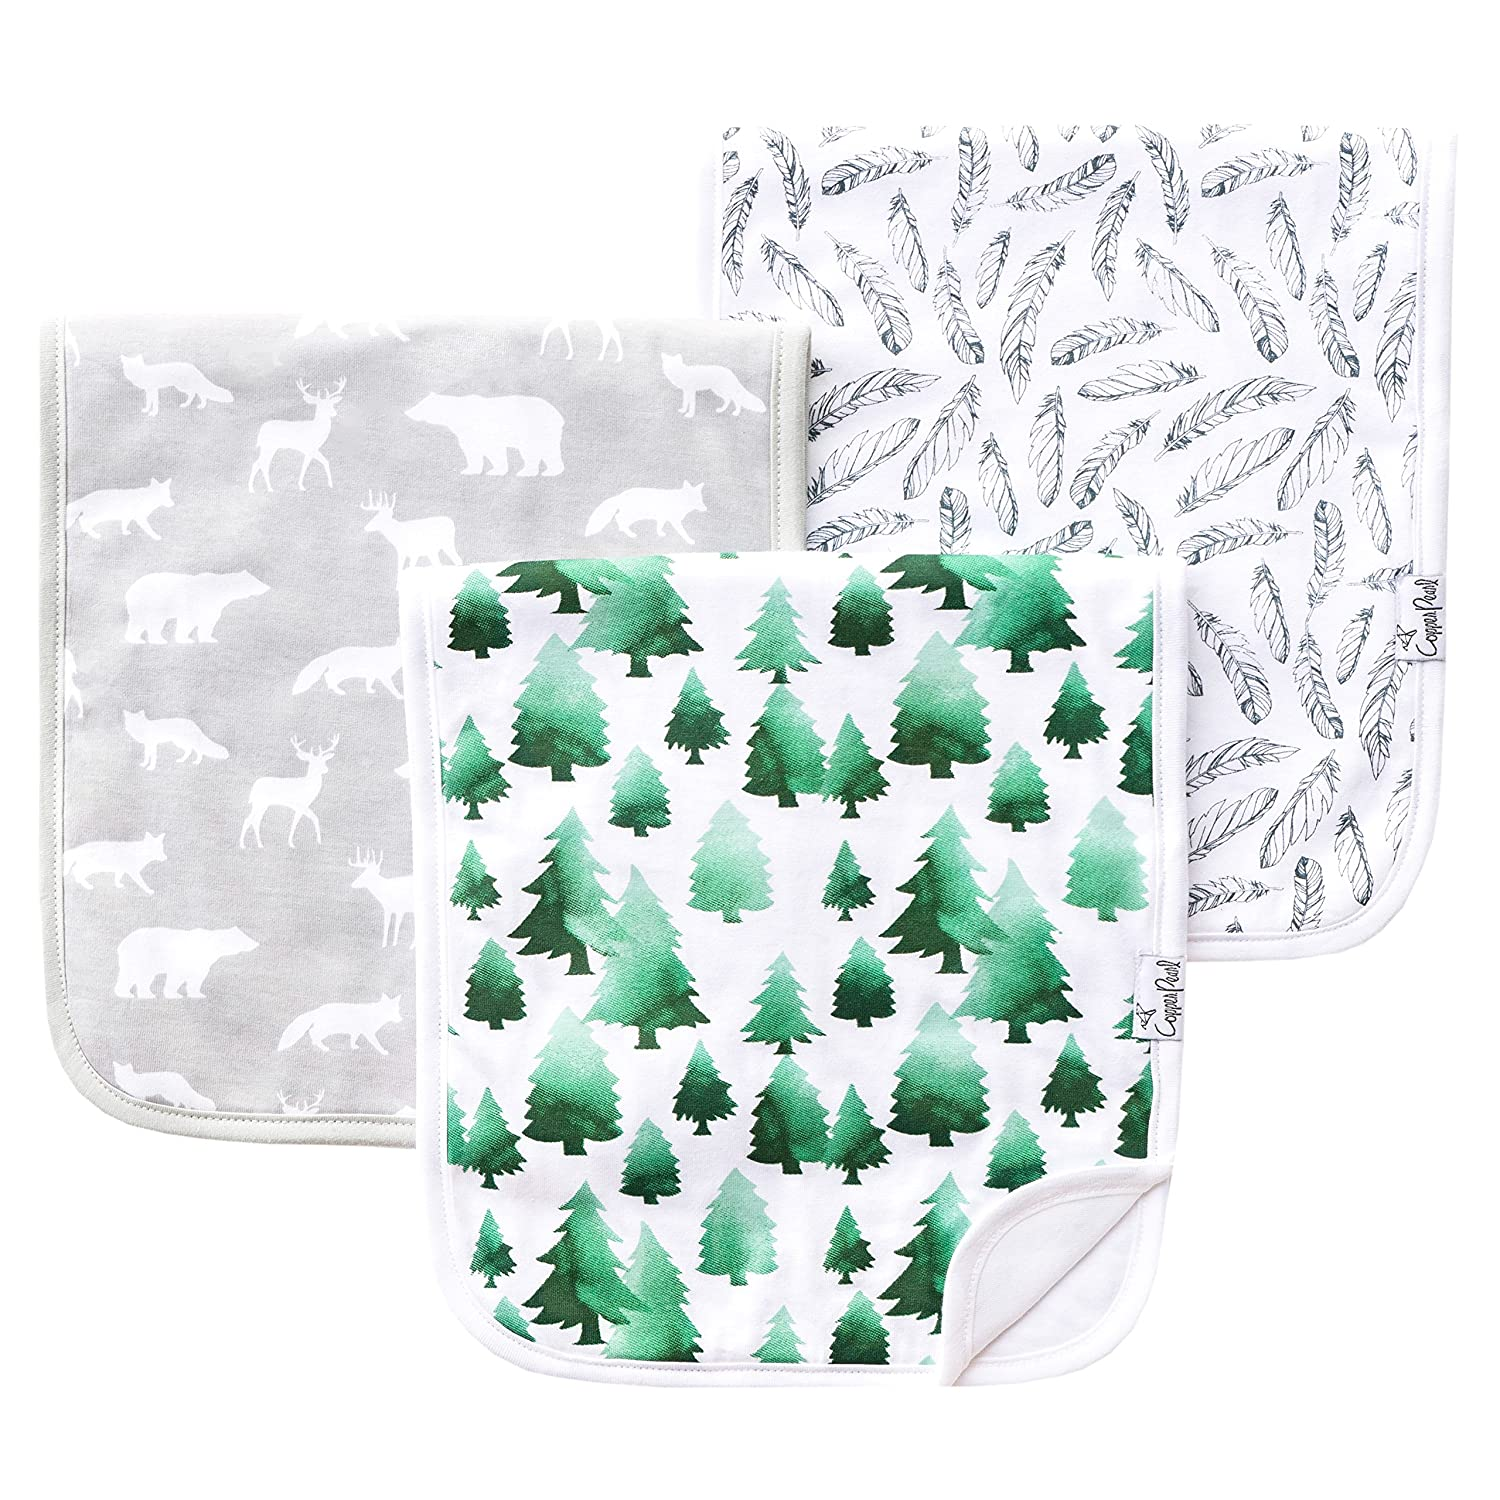 """Baby Burp Cloth Large 21x10 Size Premium Absorbent Triple Layer 3 Pack Gift Set For Boys /""""Woodland Set/"""" by Copper Pearl"""